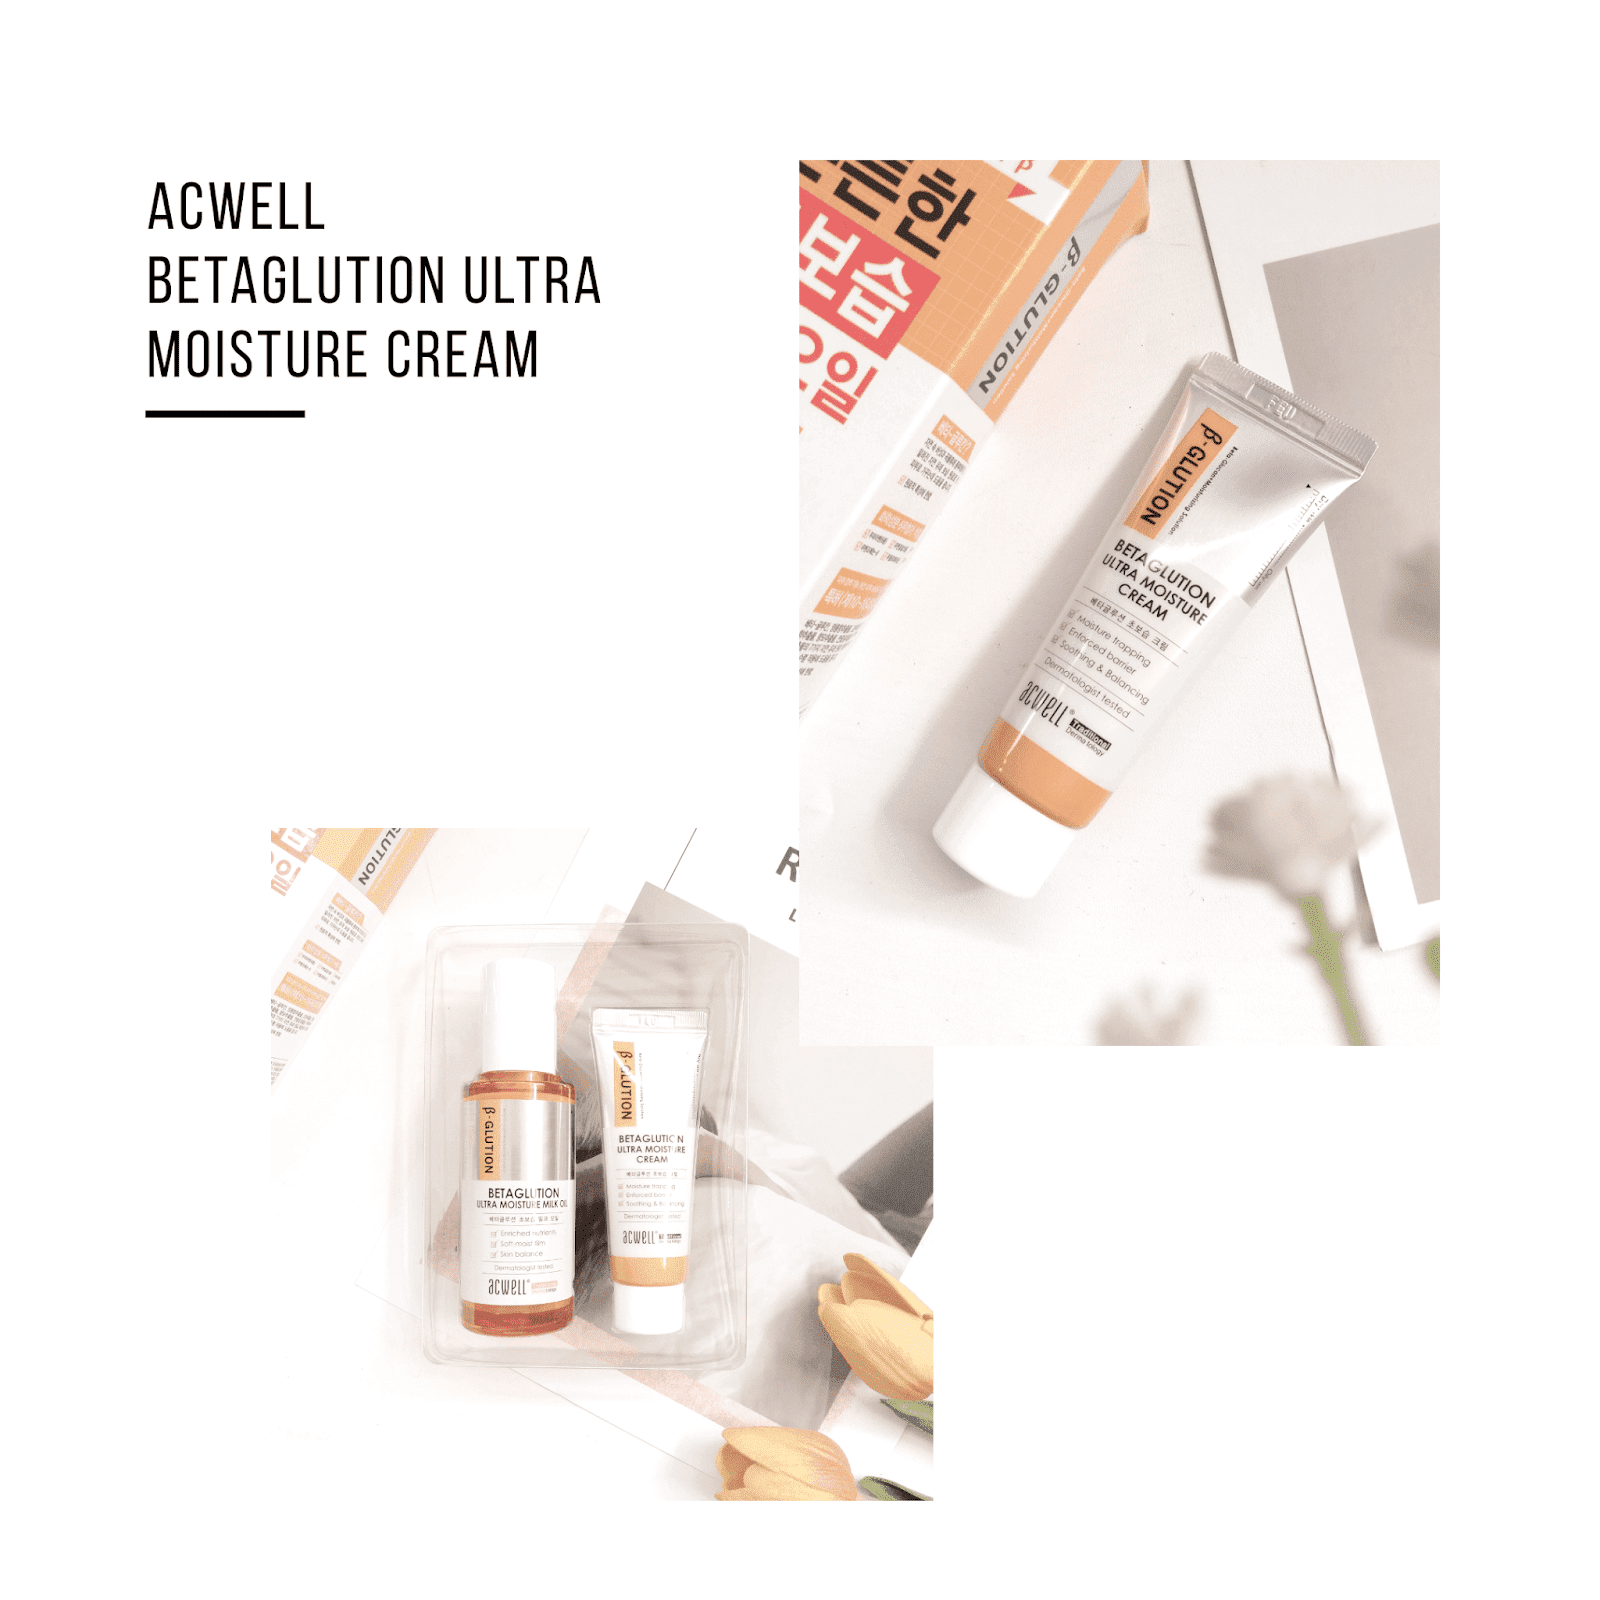 acwell-betaglution-ultra-moisture-cream